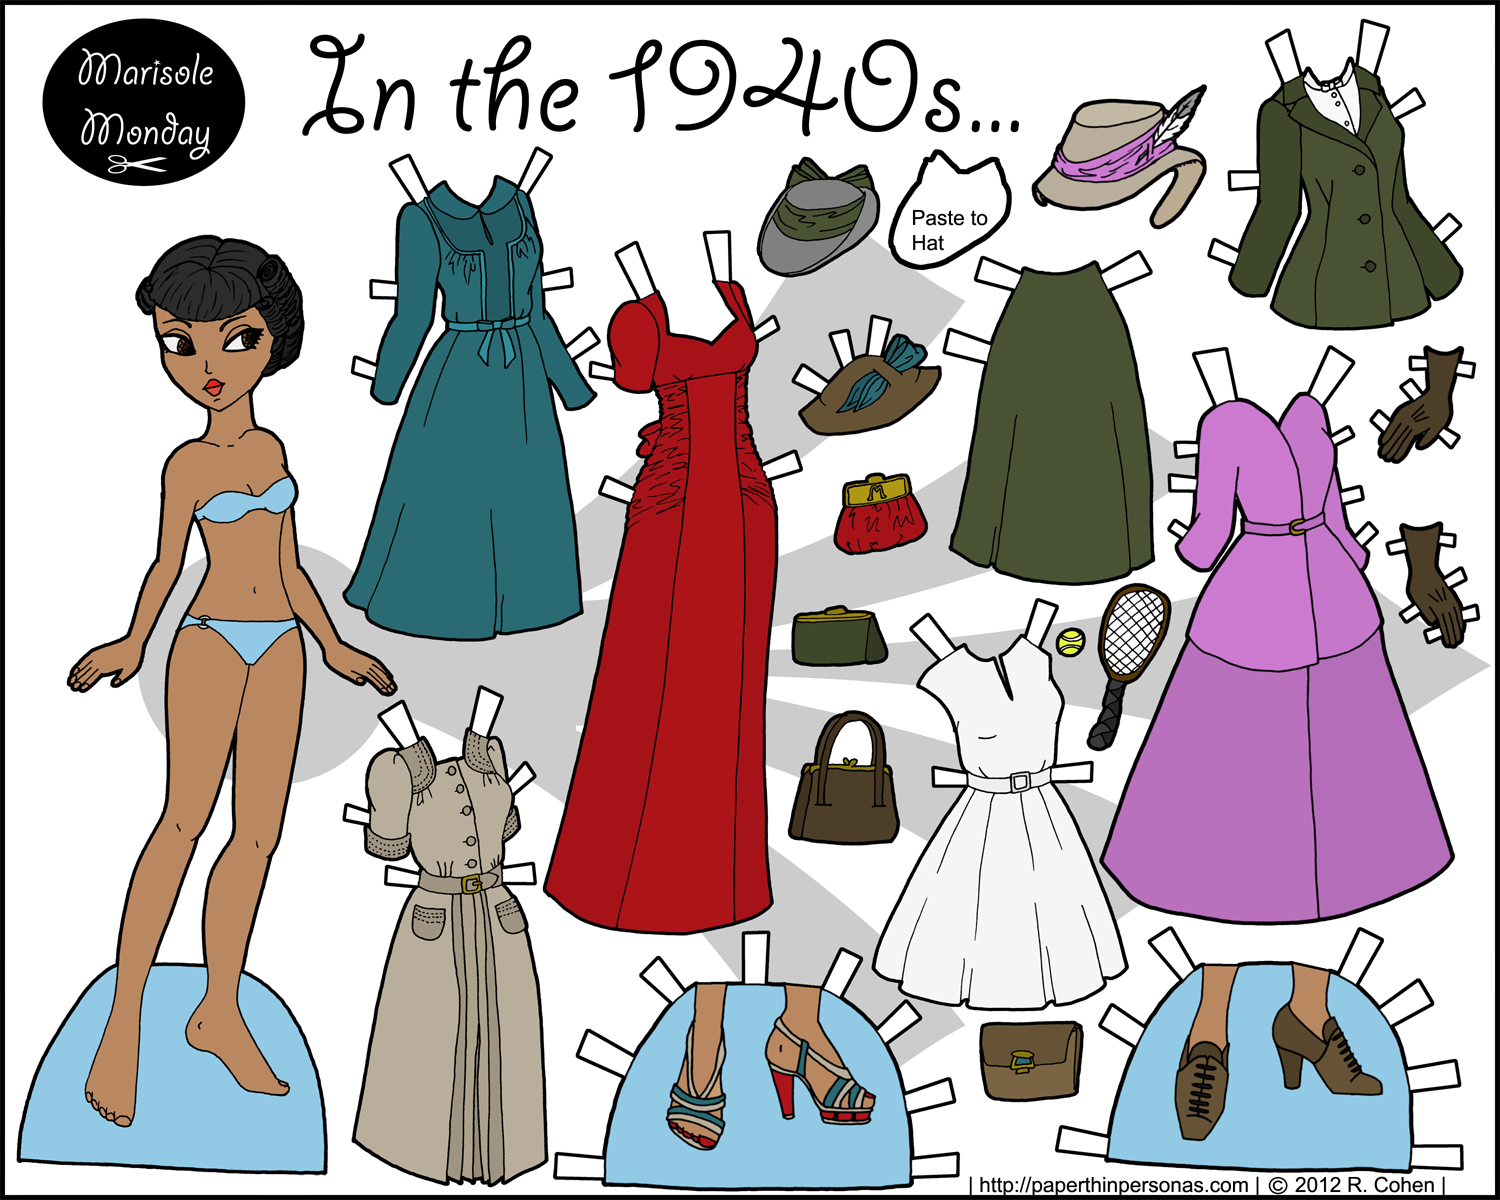 An printable black paper doll with 1940's clothing in color